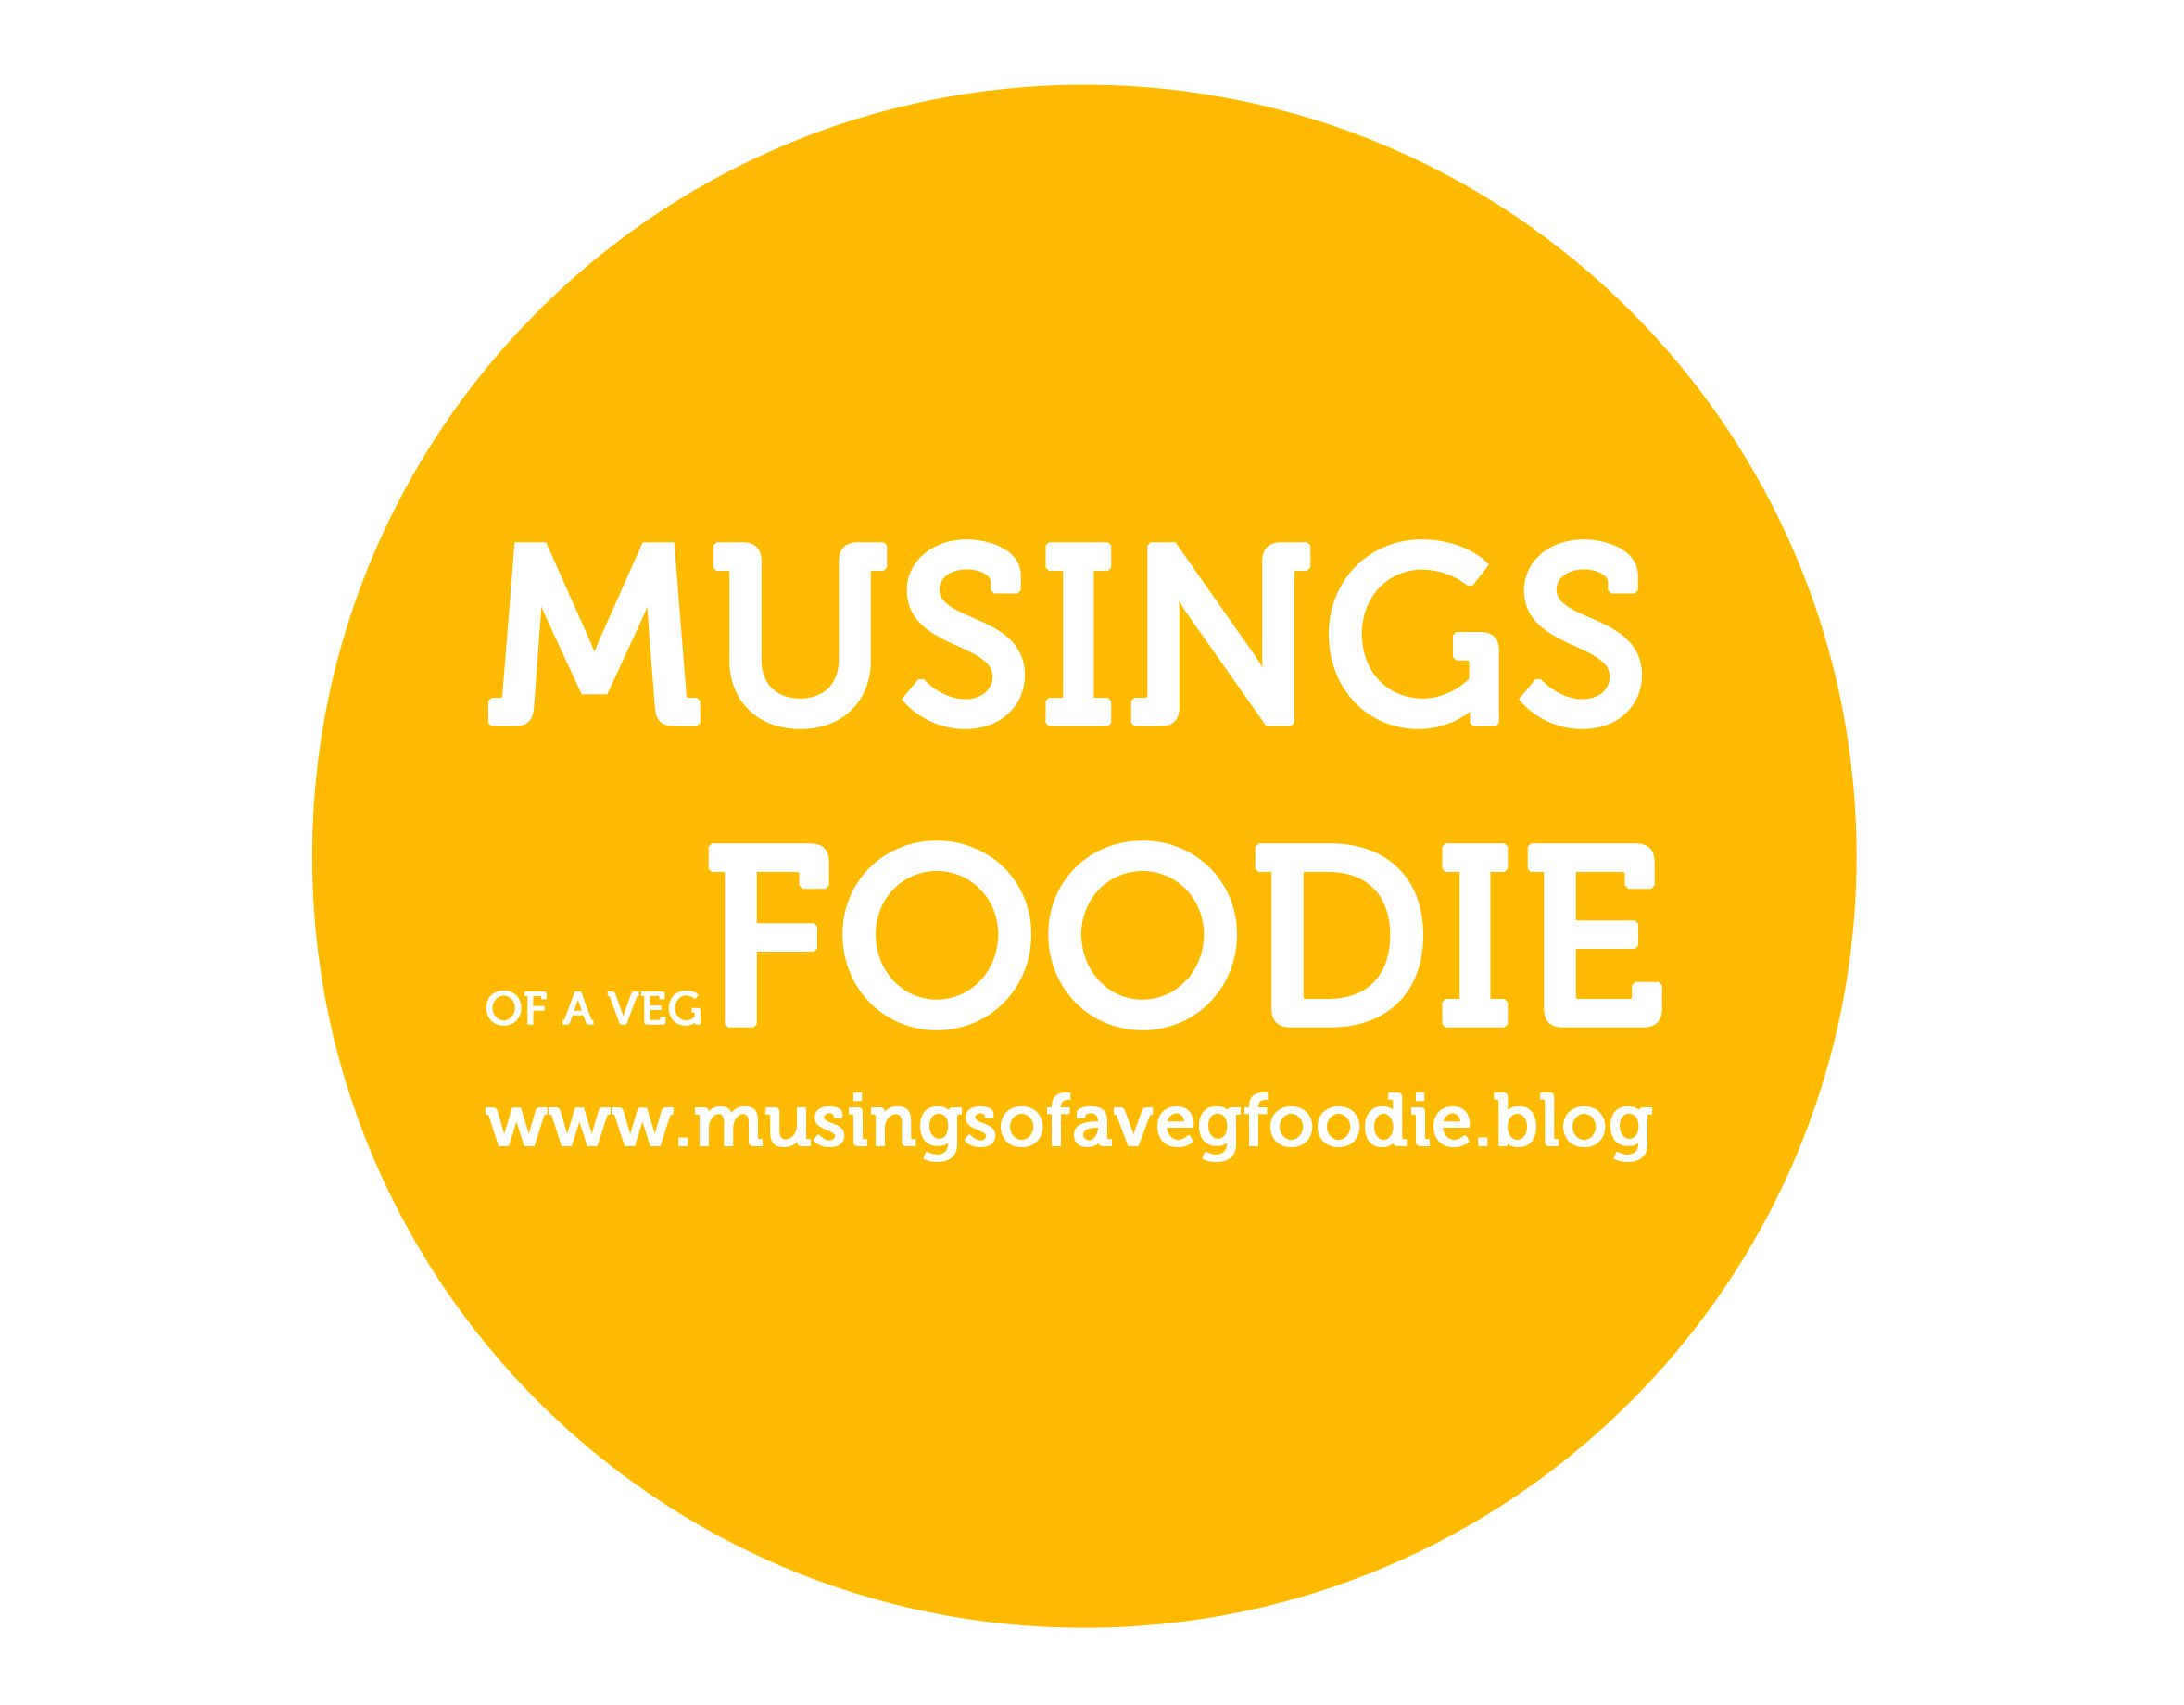 Musings of A Veg Foodie